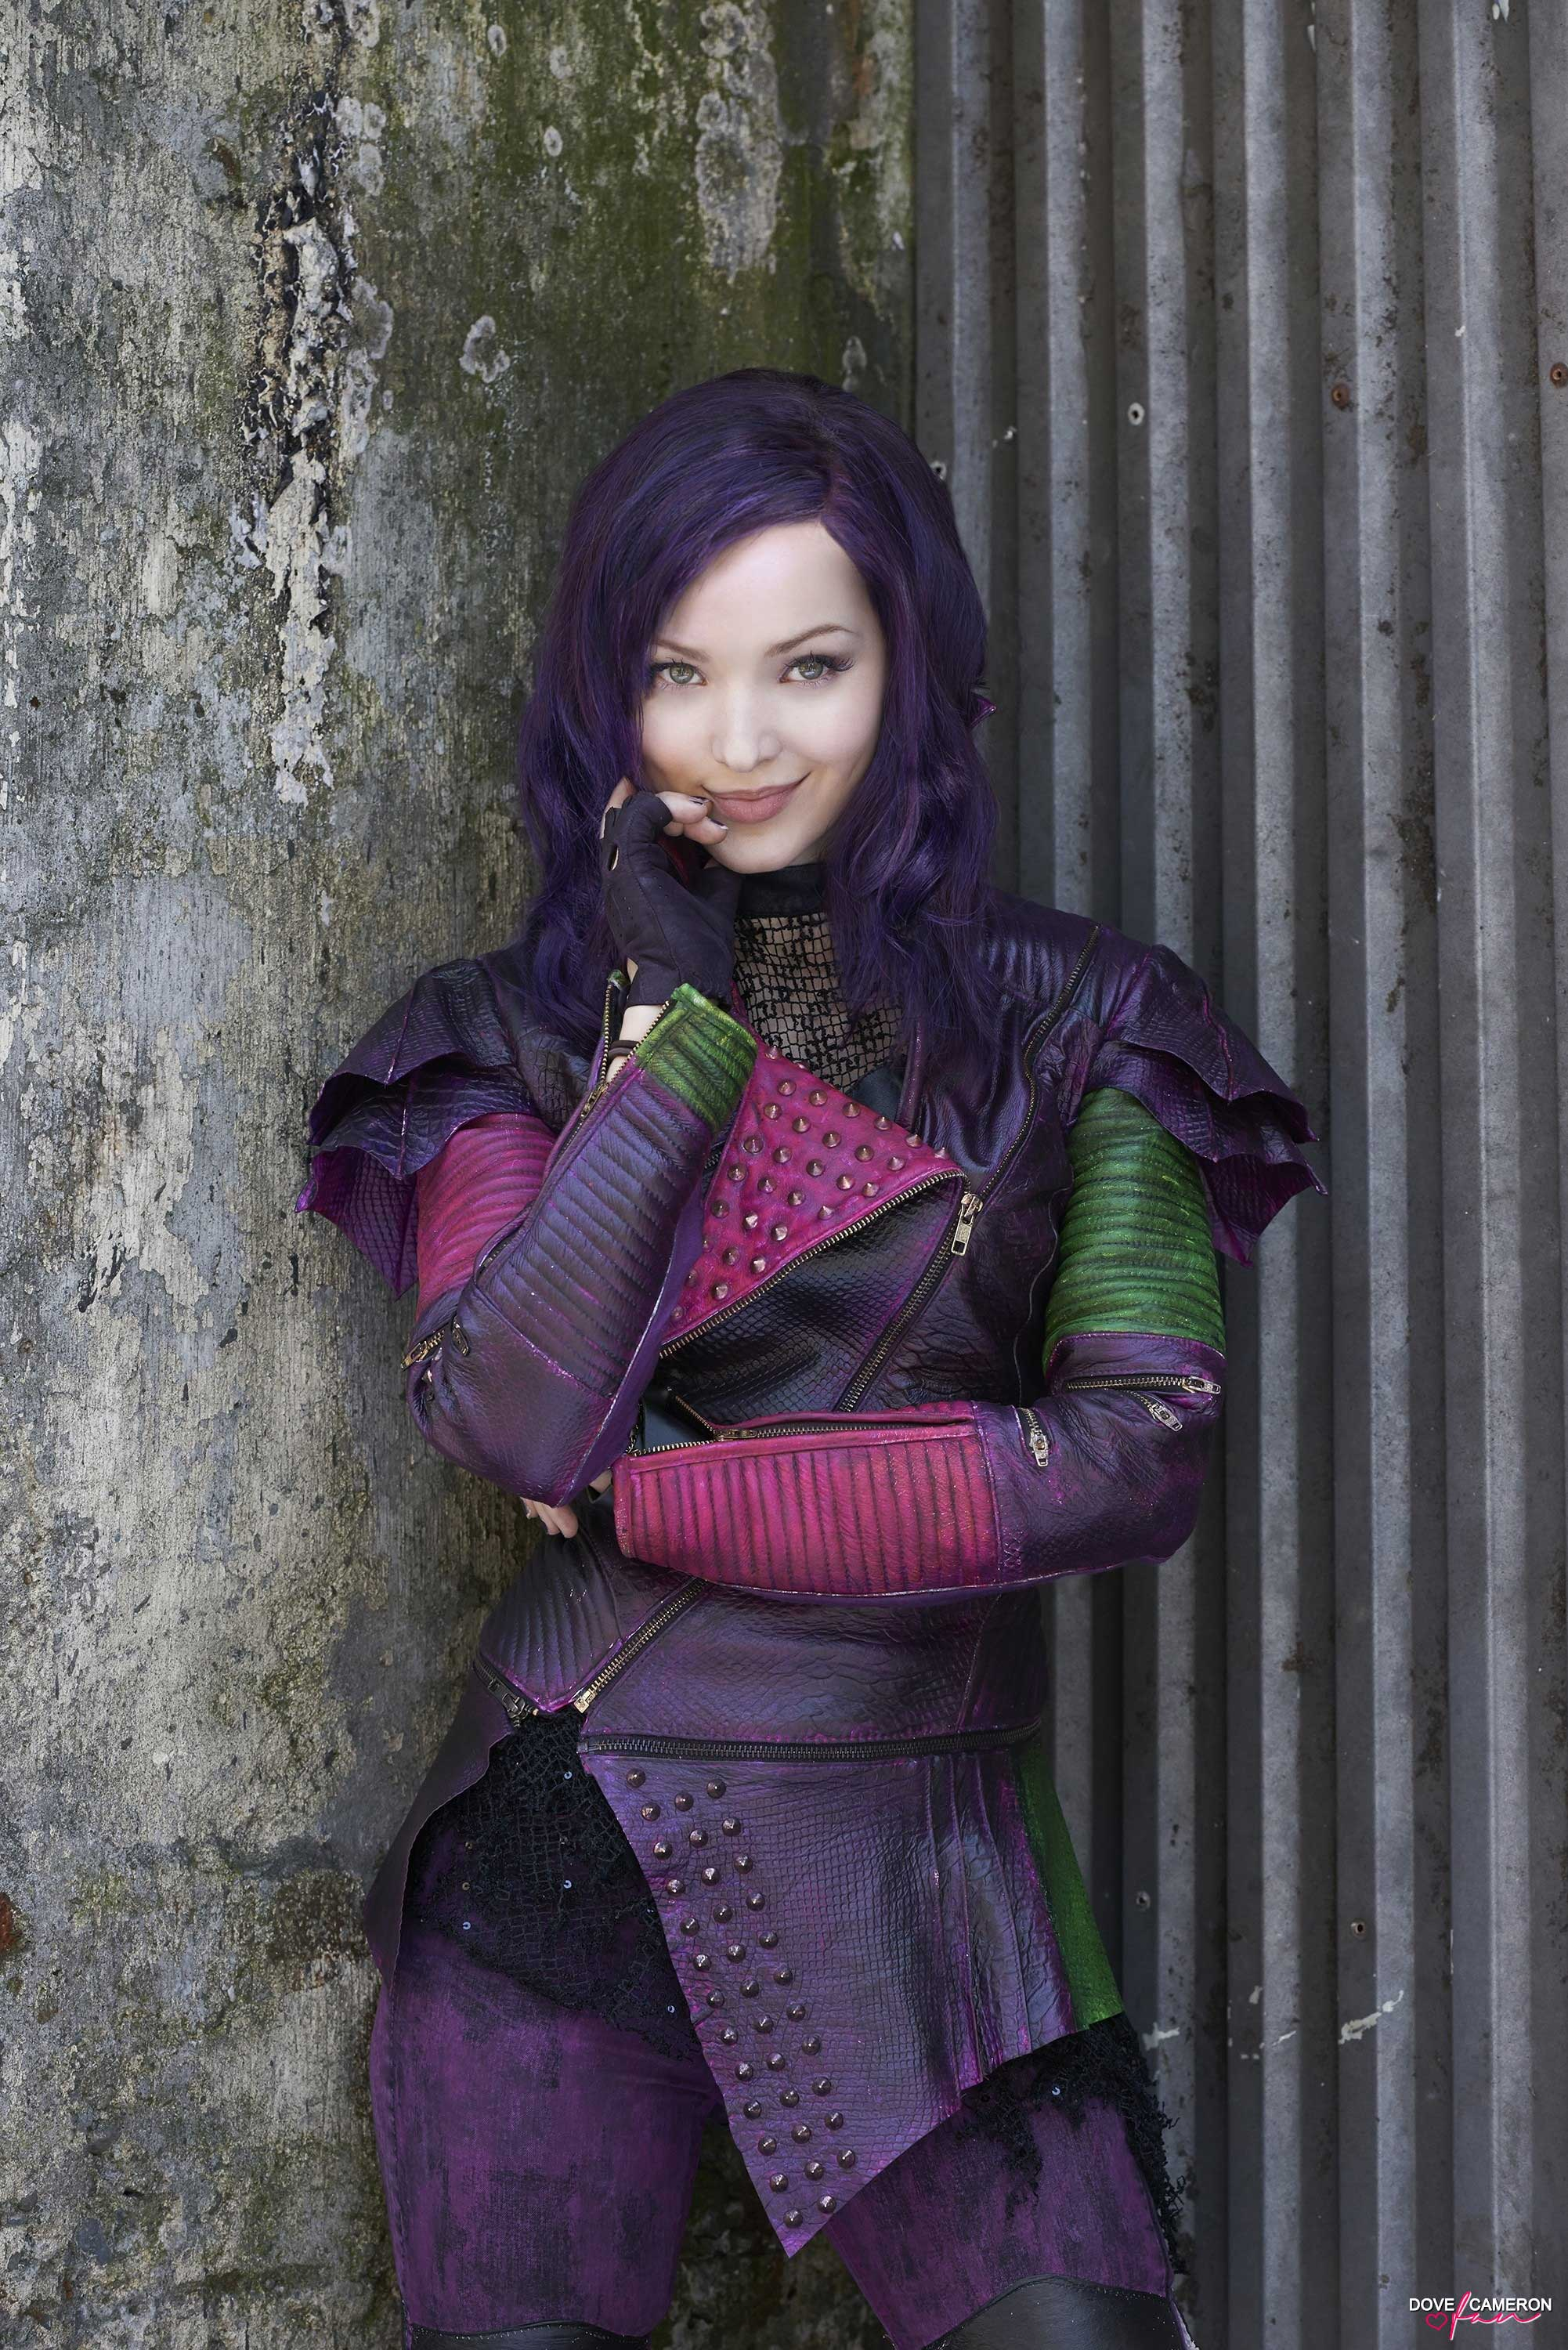 mal descendants disney channel personnage character dove cameron